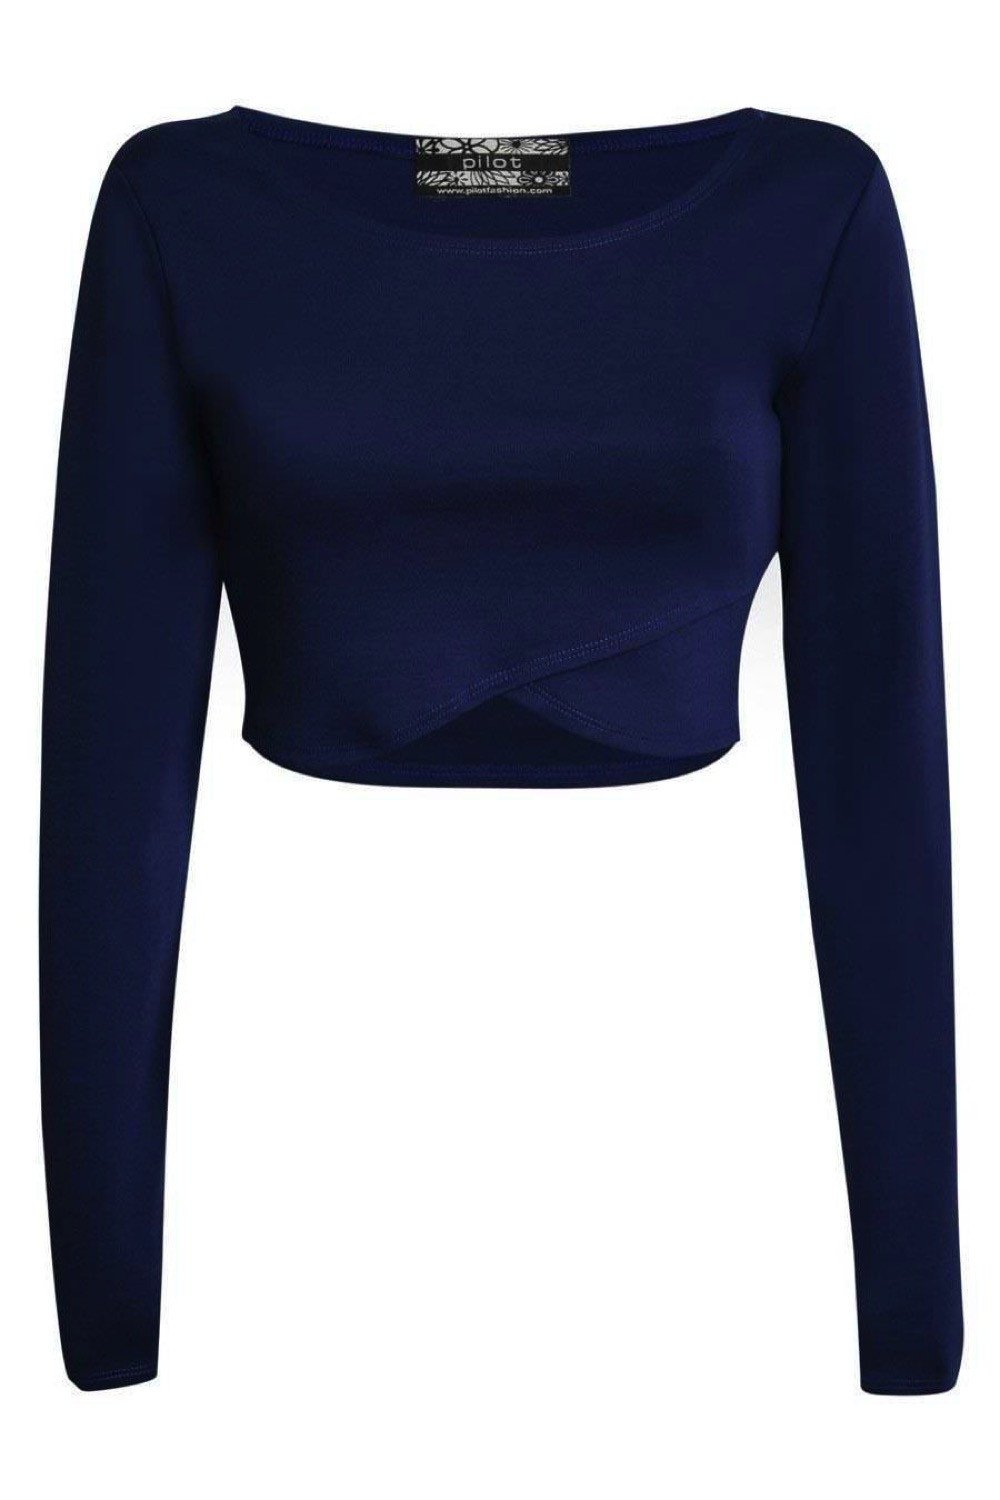 You searched for: navy long sleeve top! Etsy is the home to thousands of handmade, vintage, and one-of-a-kind products and gifts related to your search. No matter what you're looking for or where you are in the world, our global marketplace of sellers can help you find unique and affordable options.